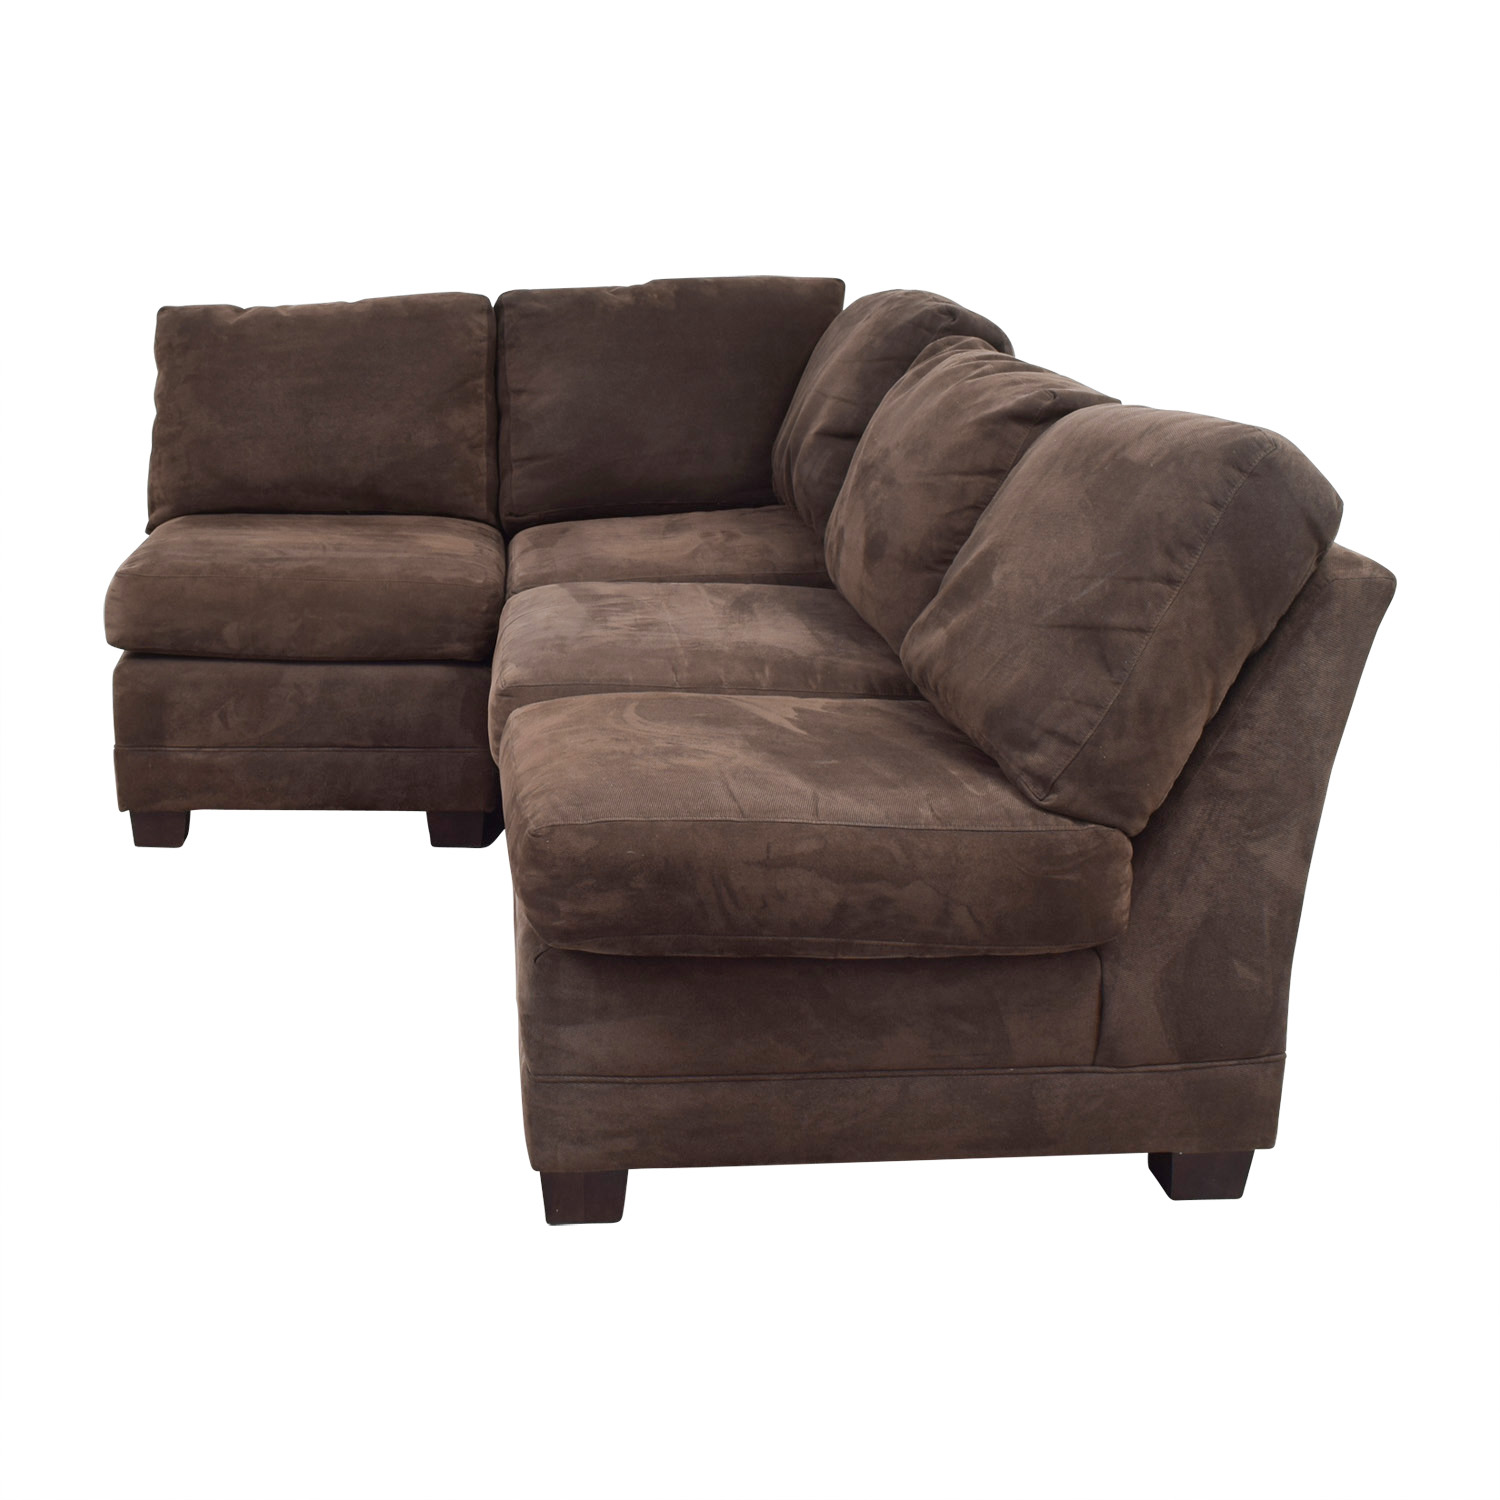 Crate & Barrel Crate & Barrel Via Brown Semi-L Sectional